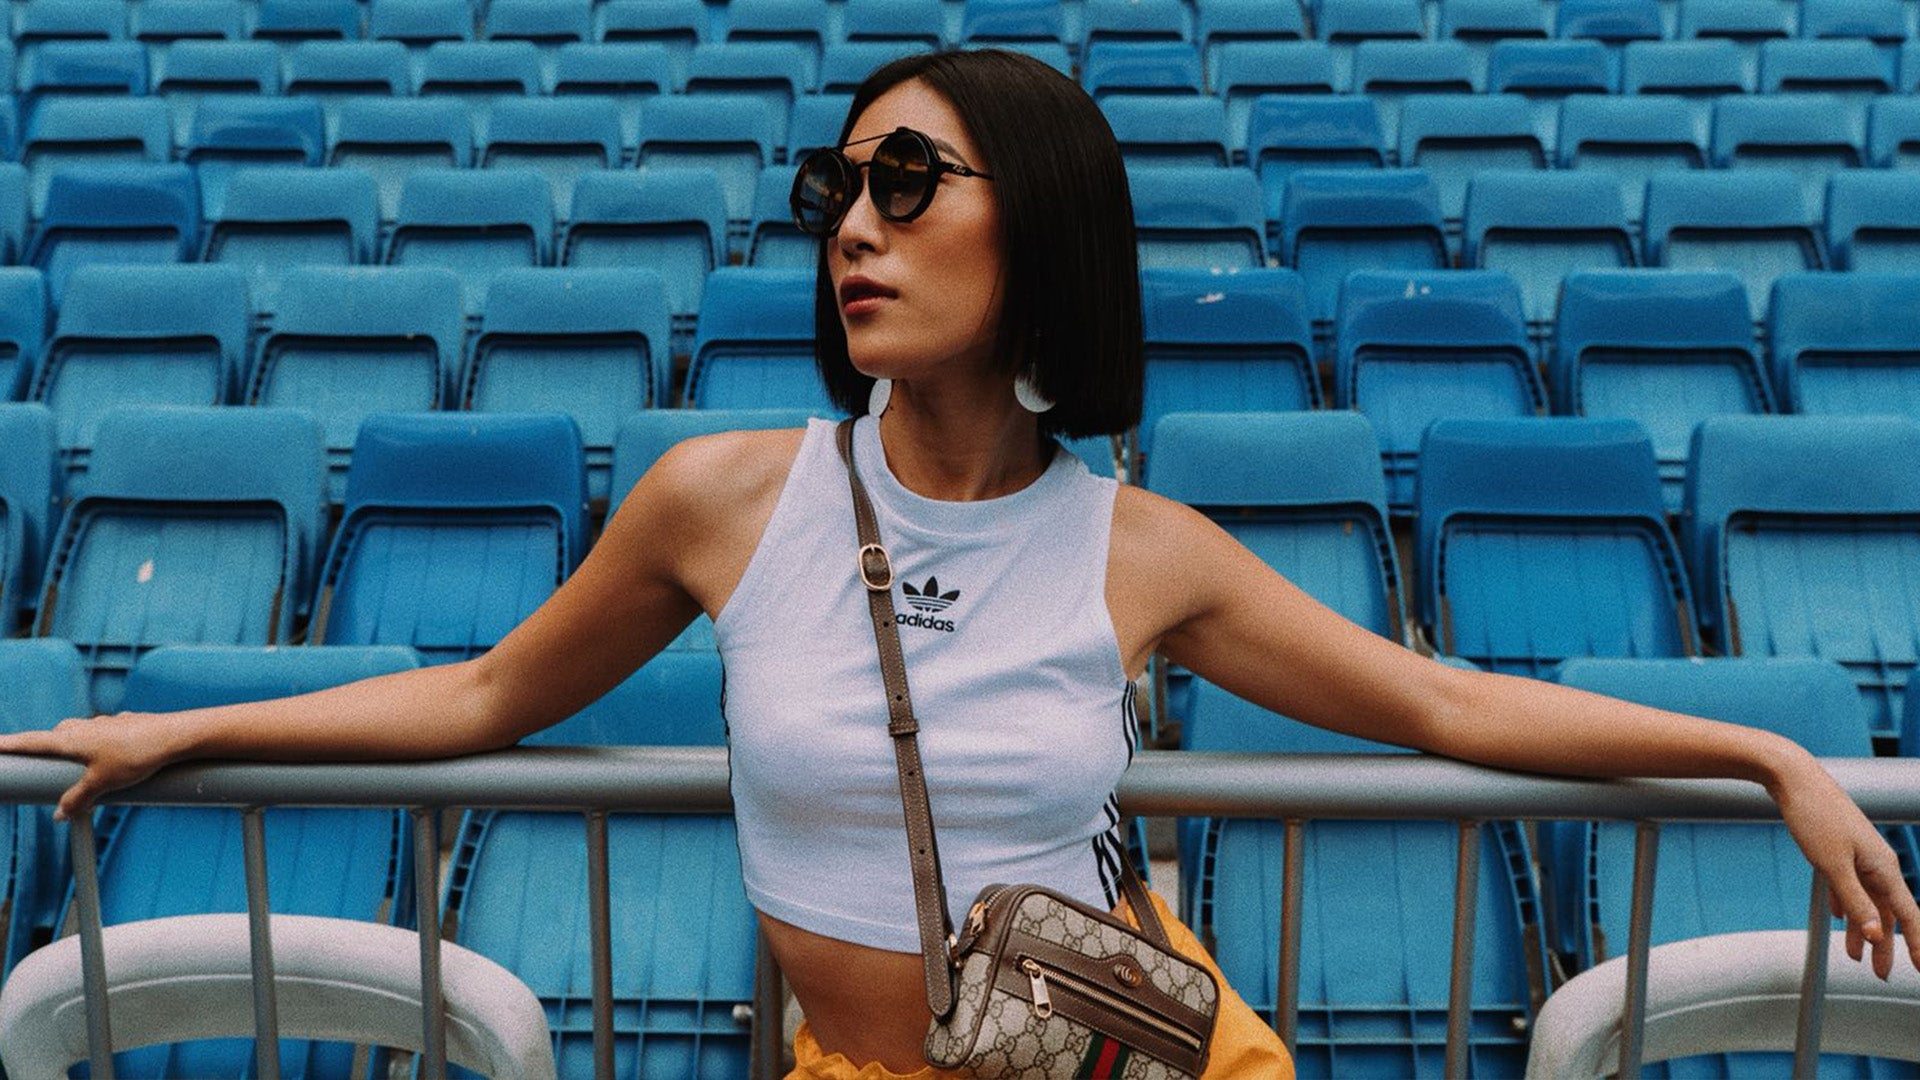 Molly Chiang wears The Minions x REVE sunglasses